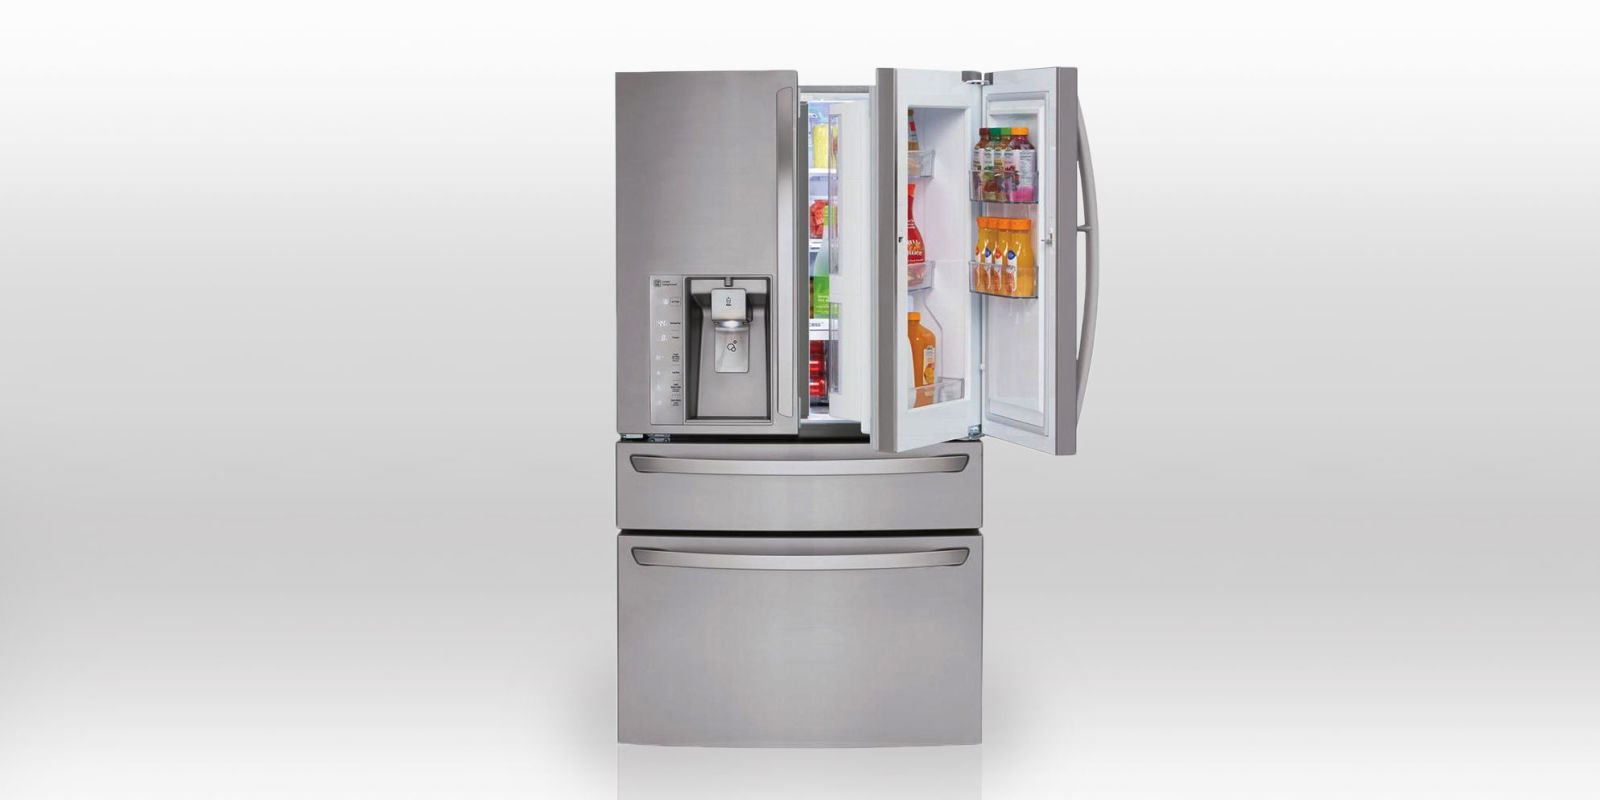 Kuche Bar Fridge Review 12 Best French Door Refrigerator Reviews 2016 Top